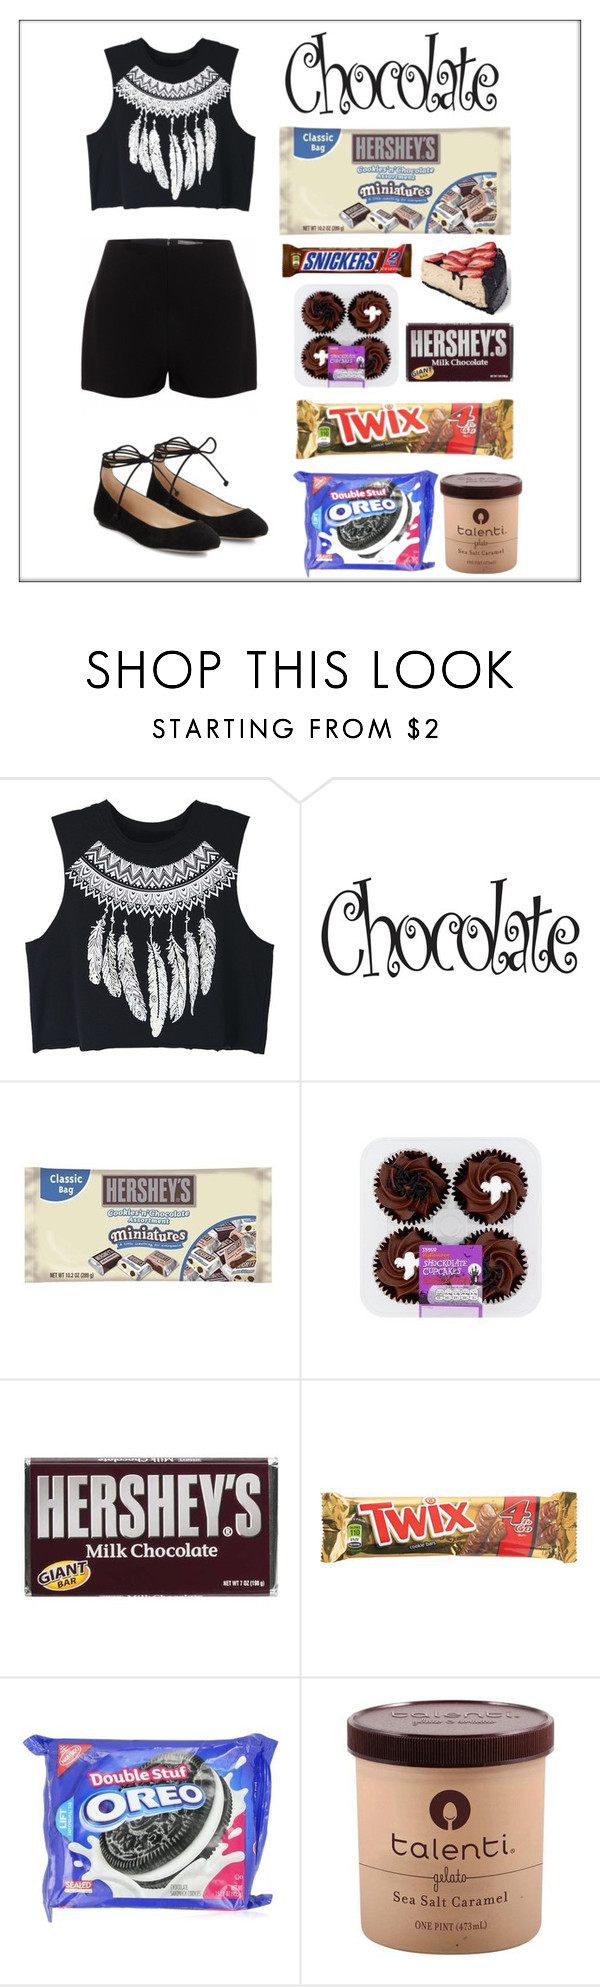 """chocolate"" by anahitaho ❤ liked on Polyvore featuring WithChic, Alexander McQueen, Hershey's and Karl Lagerfeld"